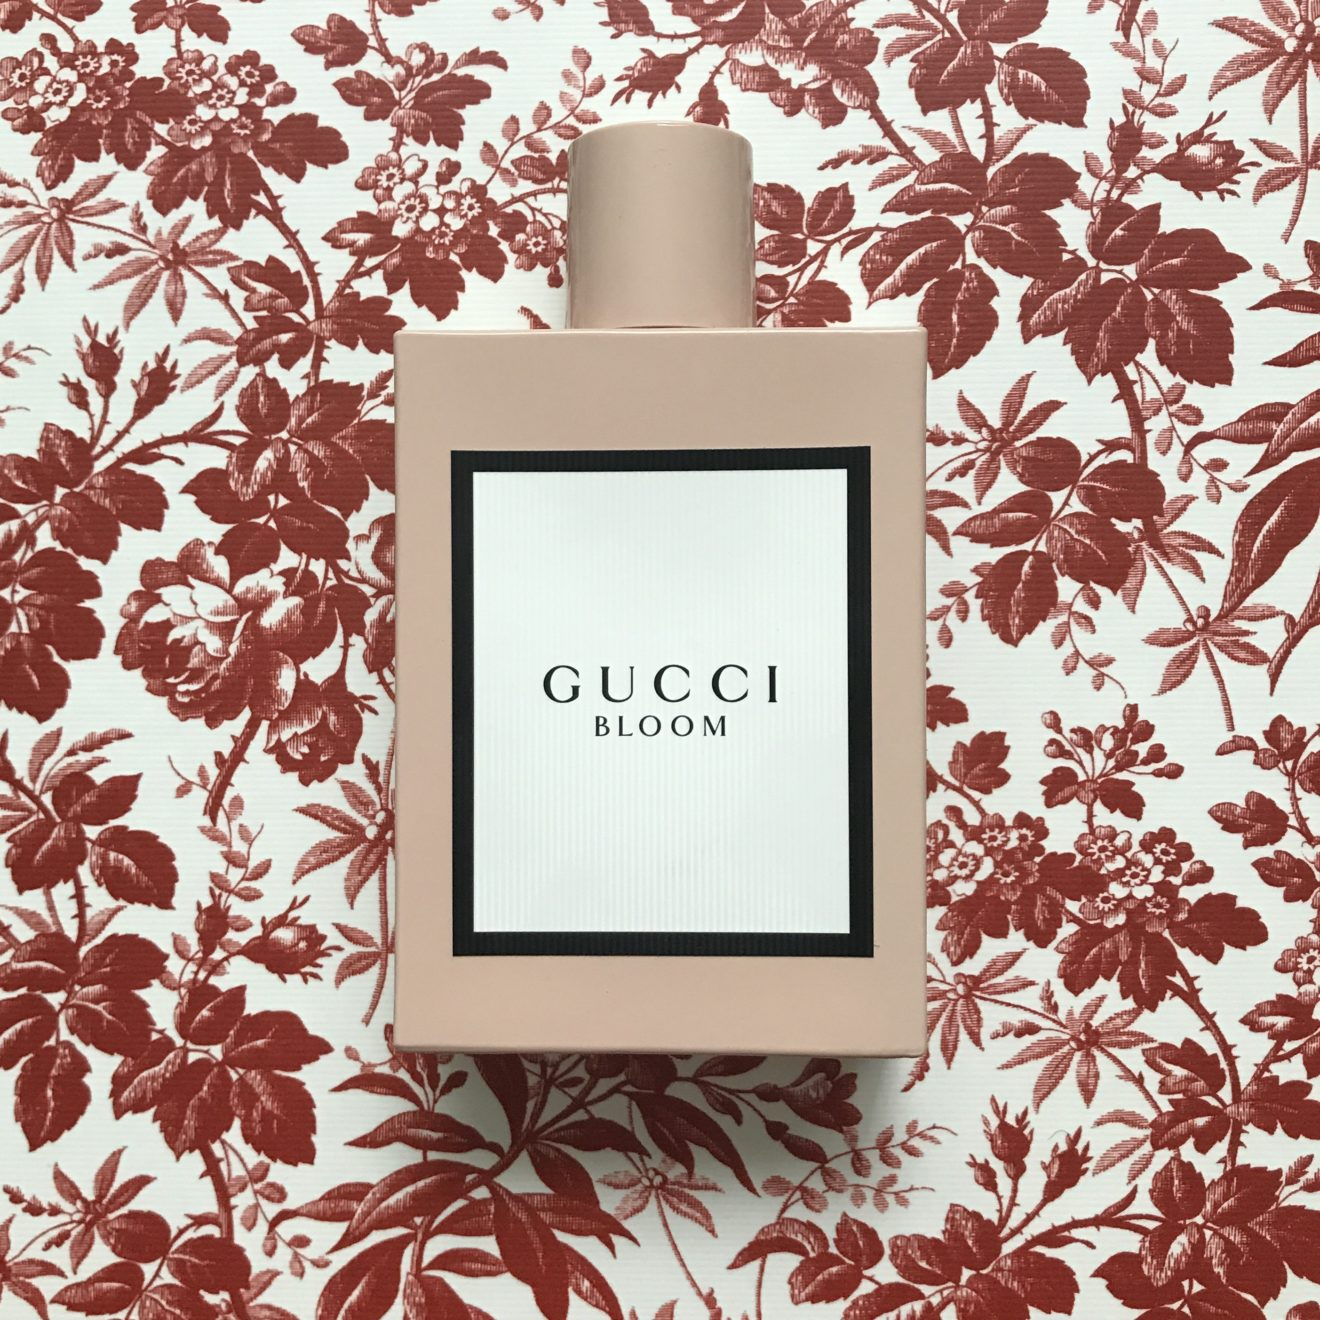 Gucci Bloom Smells Like Skin Kissed By Flowers Daly Beauty